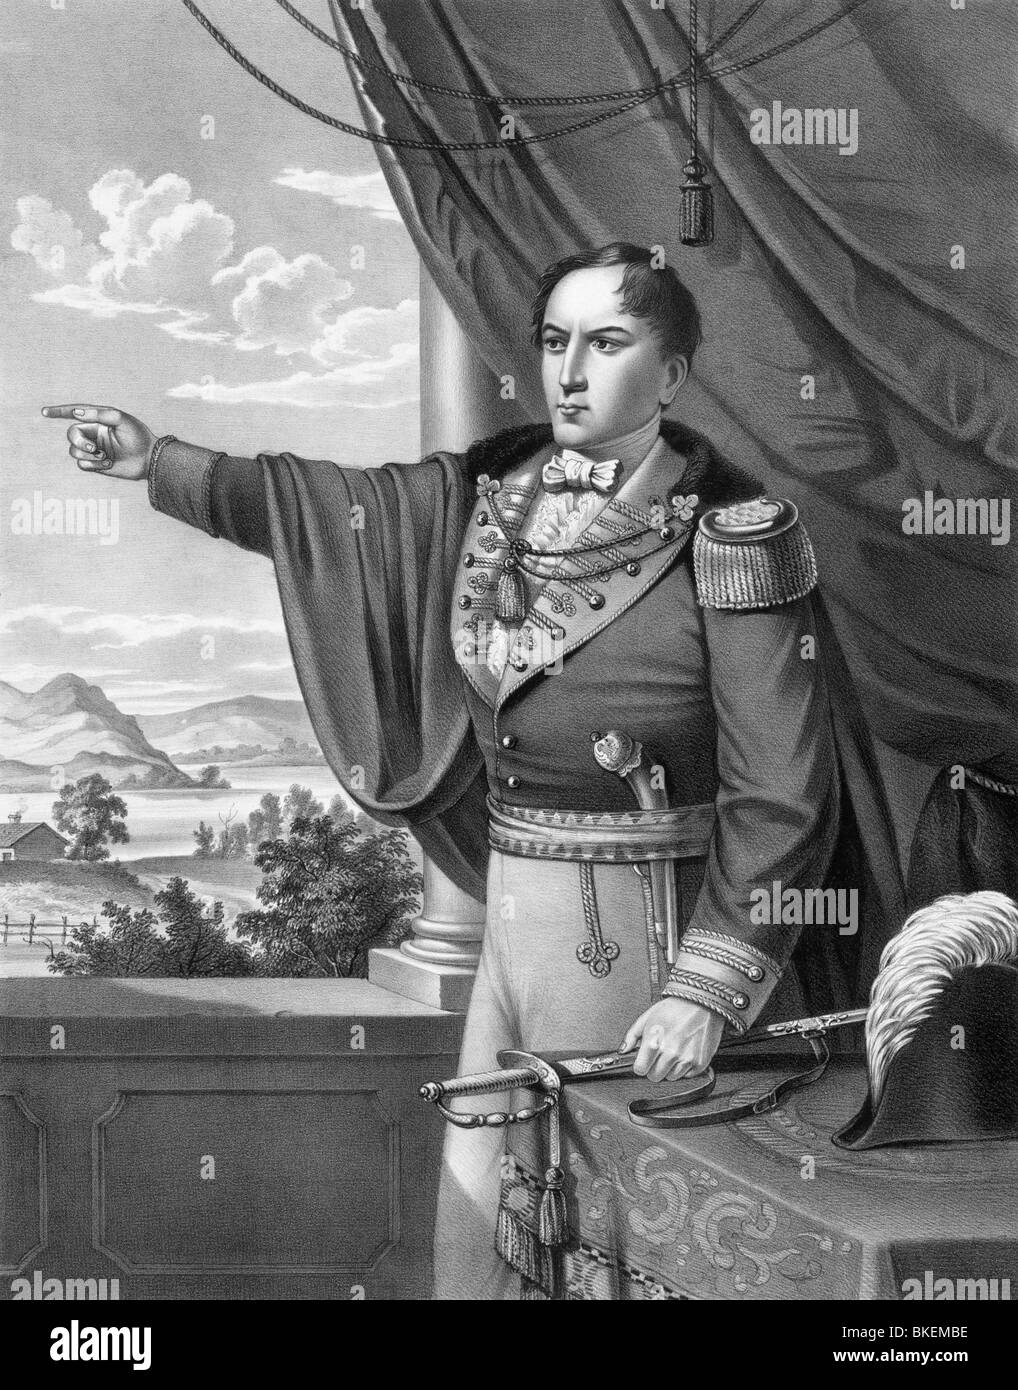 Vintage portrait print of Irish nationalist rebel leader Robert Emmet (1778 - 1803) entitled 'The Martyr of - Stock Image